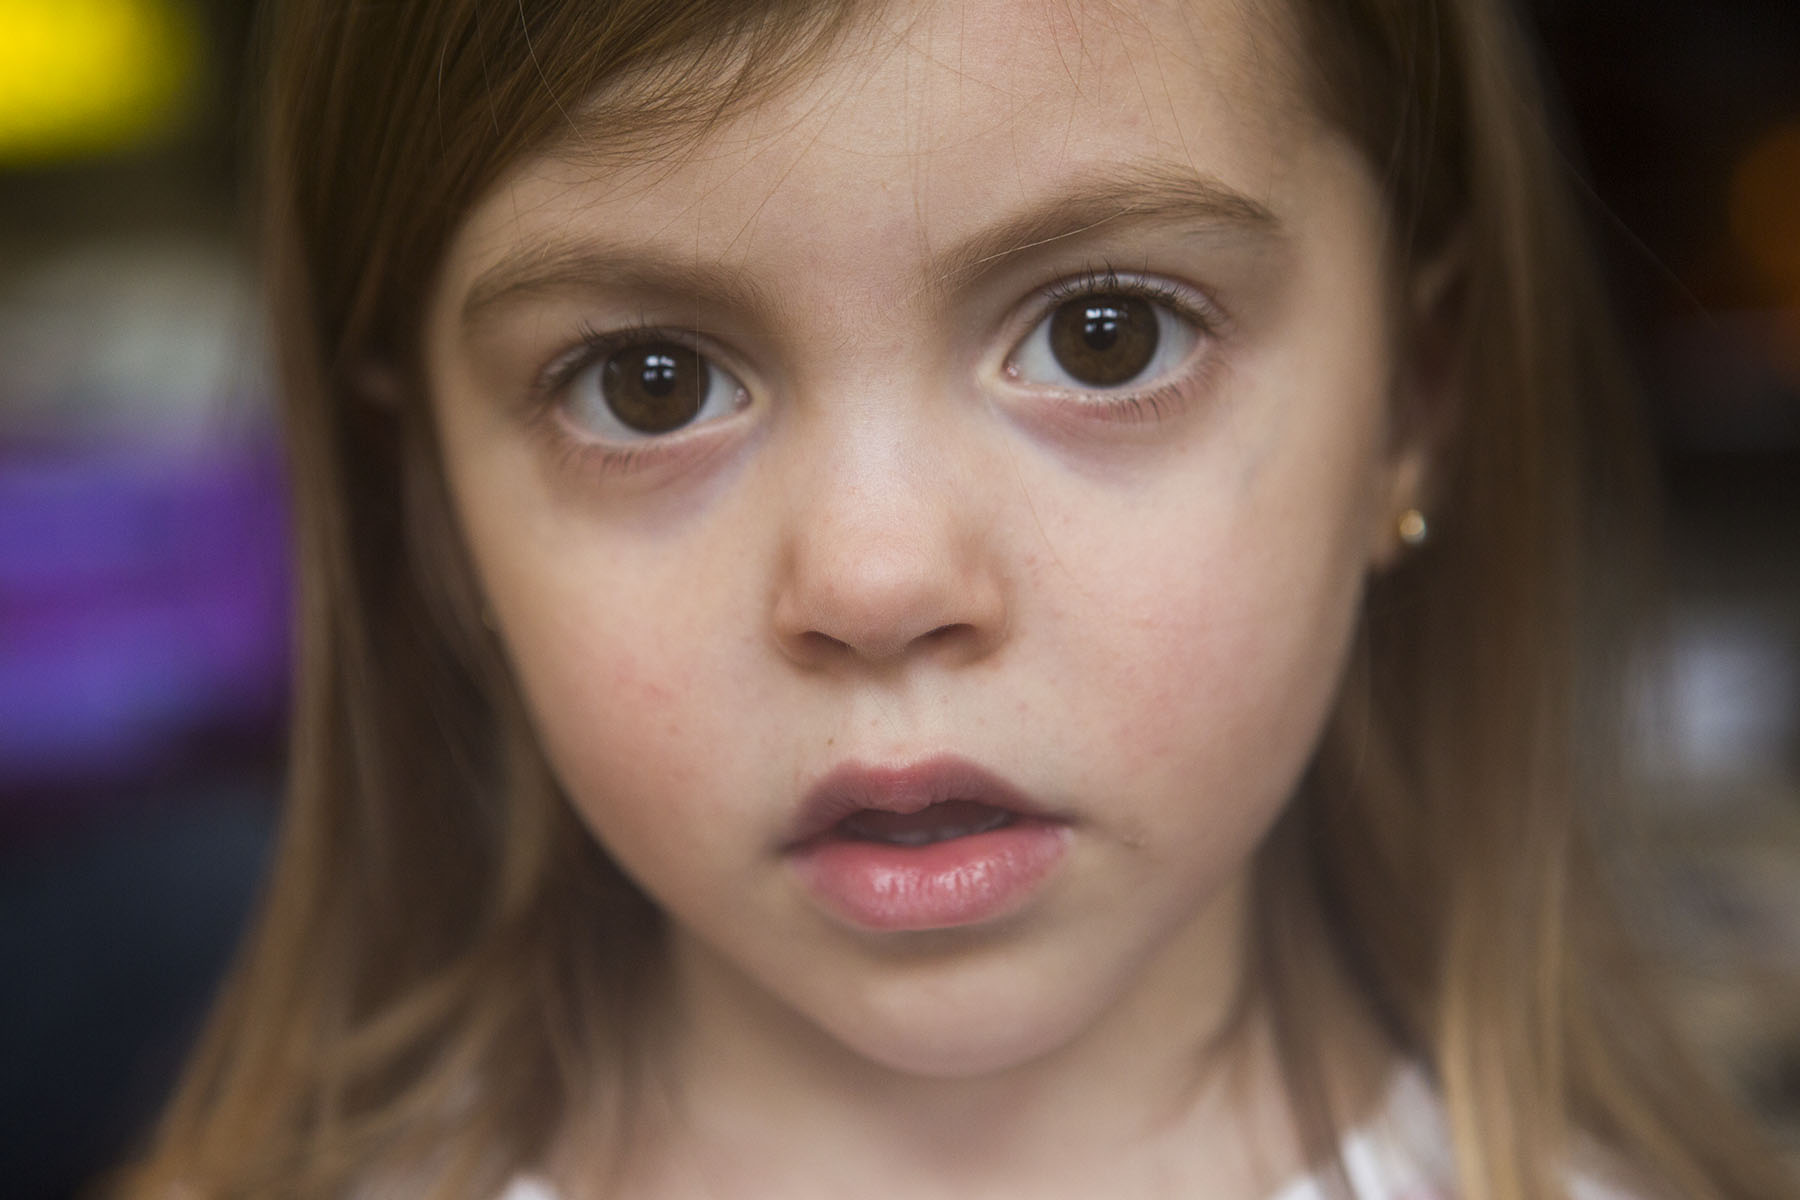 A portrait of a young girl, perhaps 6 years old. This a portrait of her face.